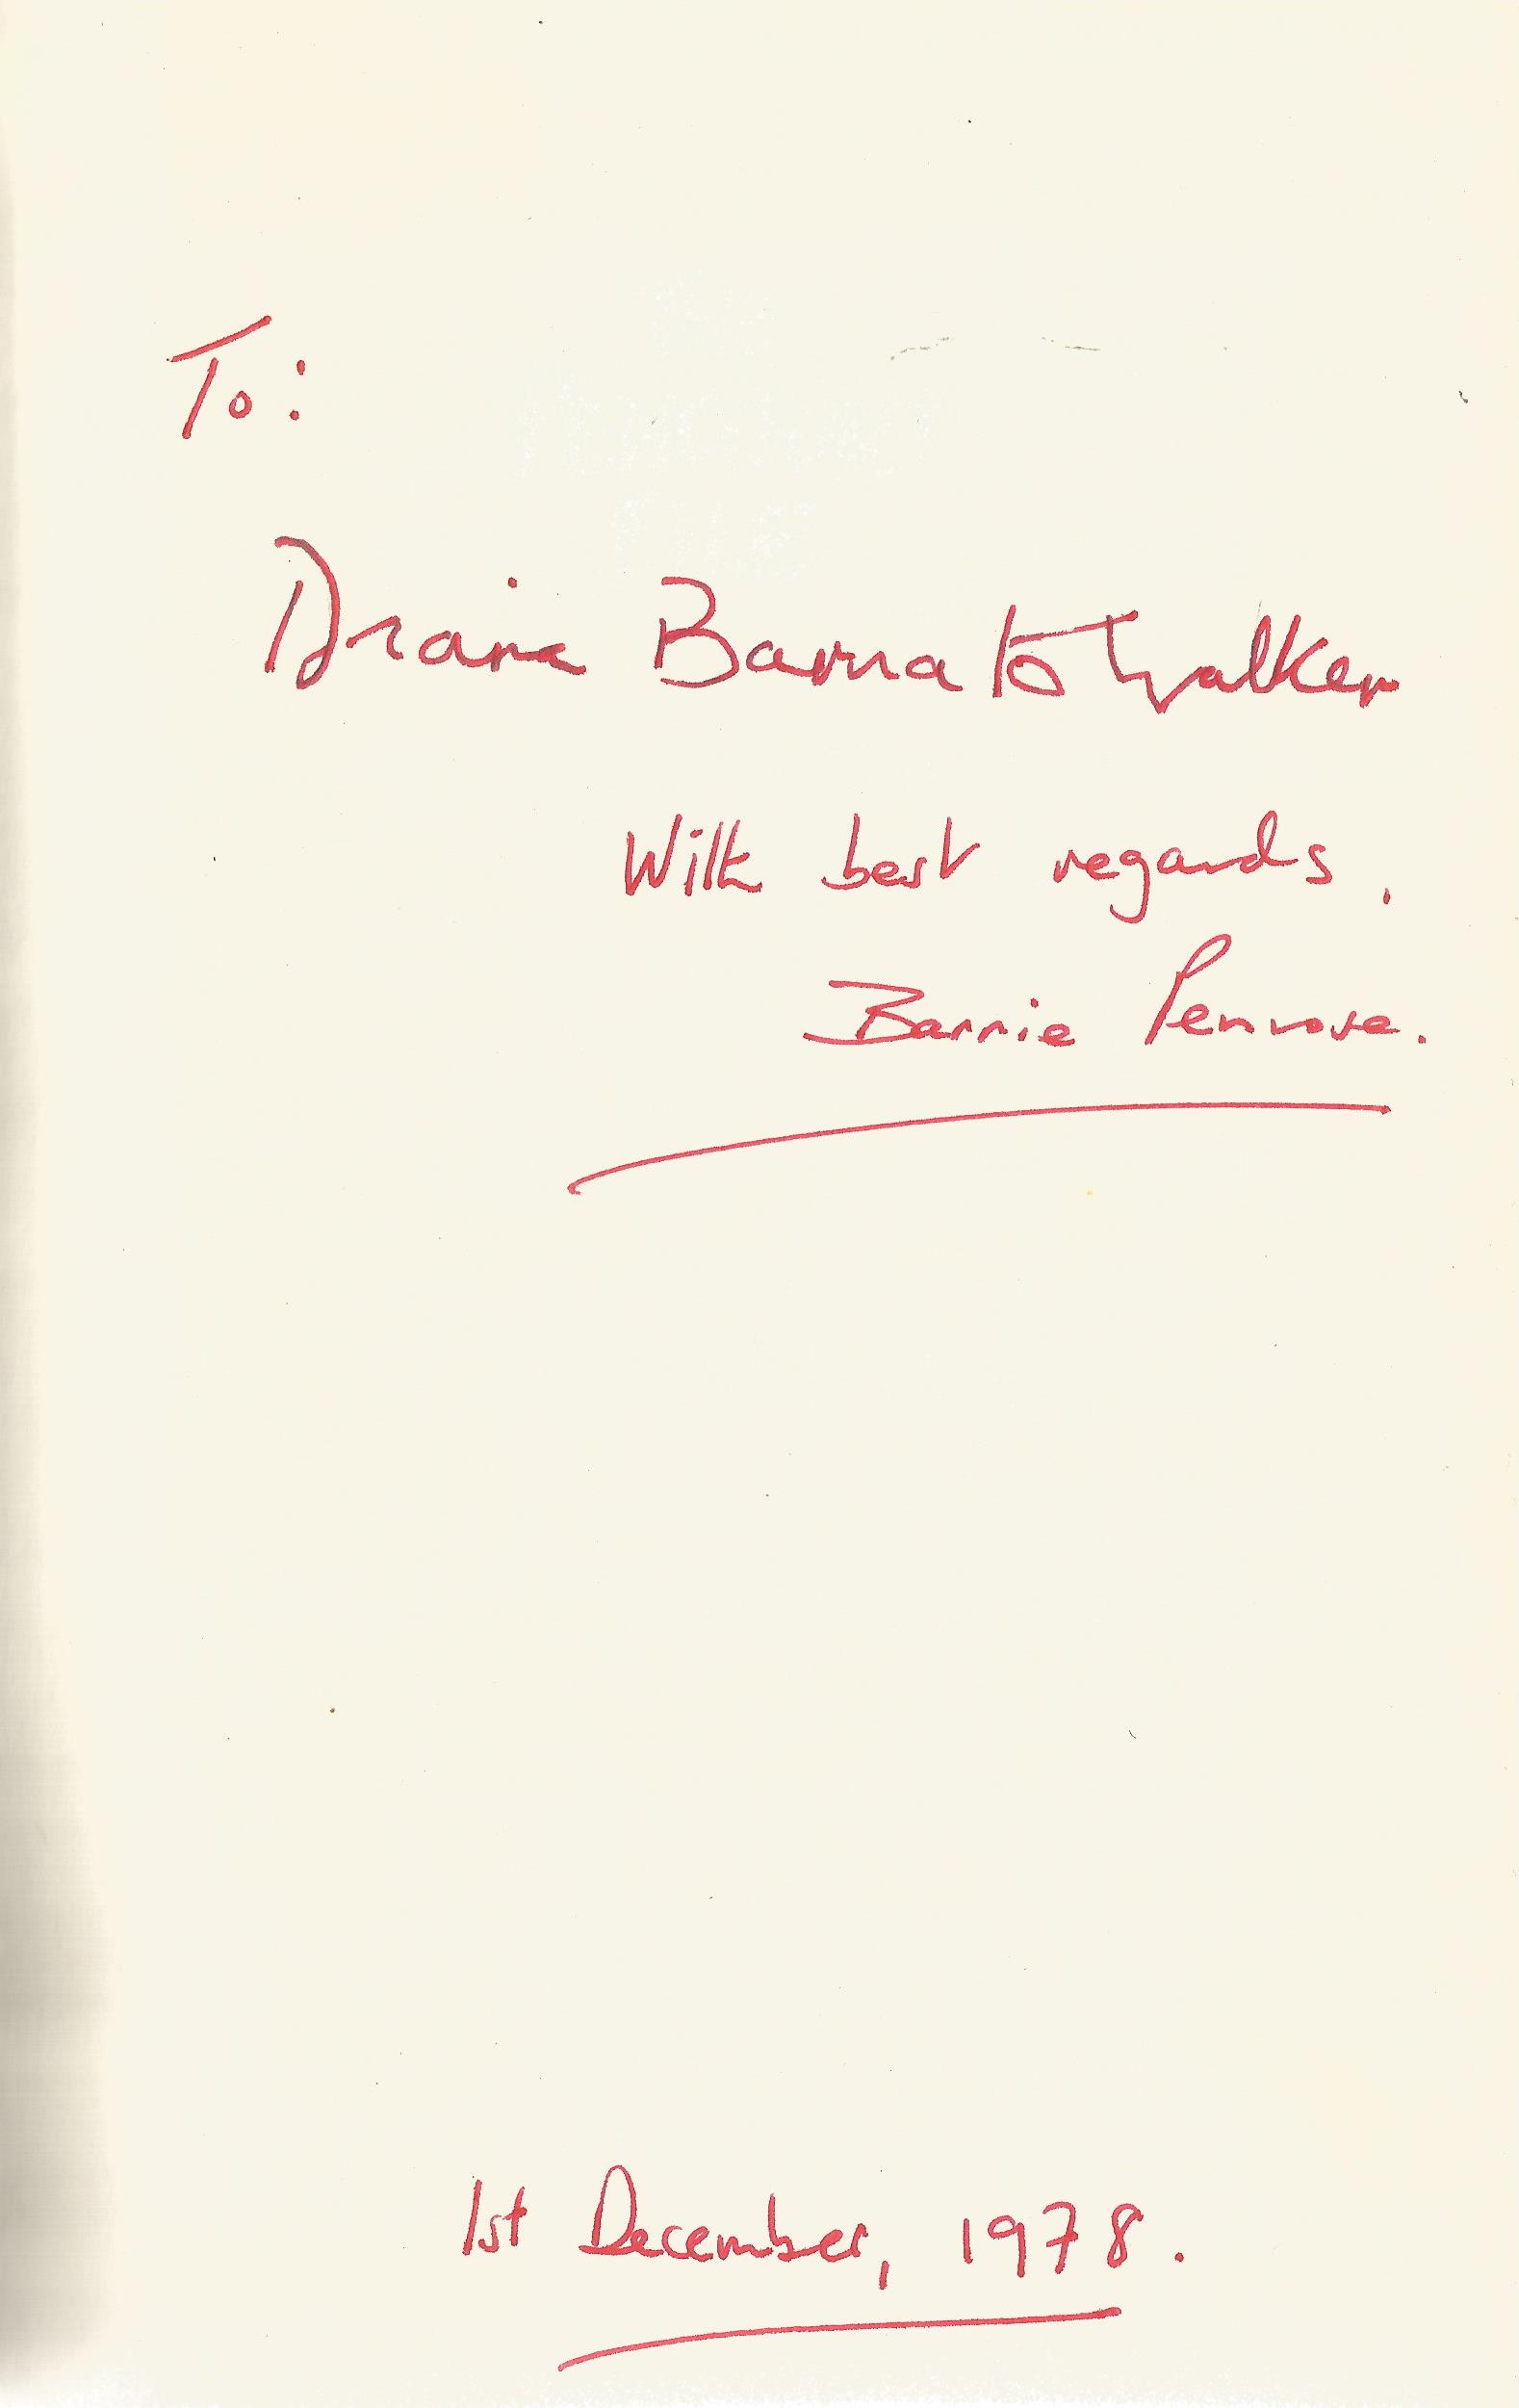 Barnie Penrose and Roger Courtiour Hardback Book The Pencourt File signed by Barnie Penrose on the - Image 2 of 2